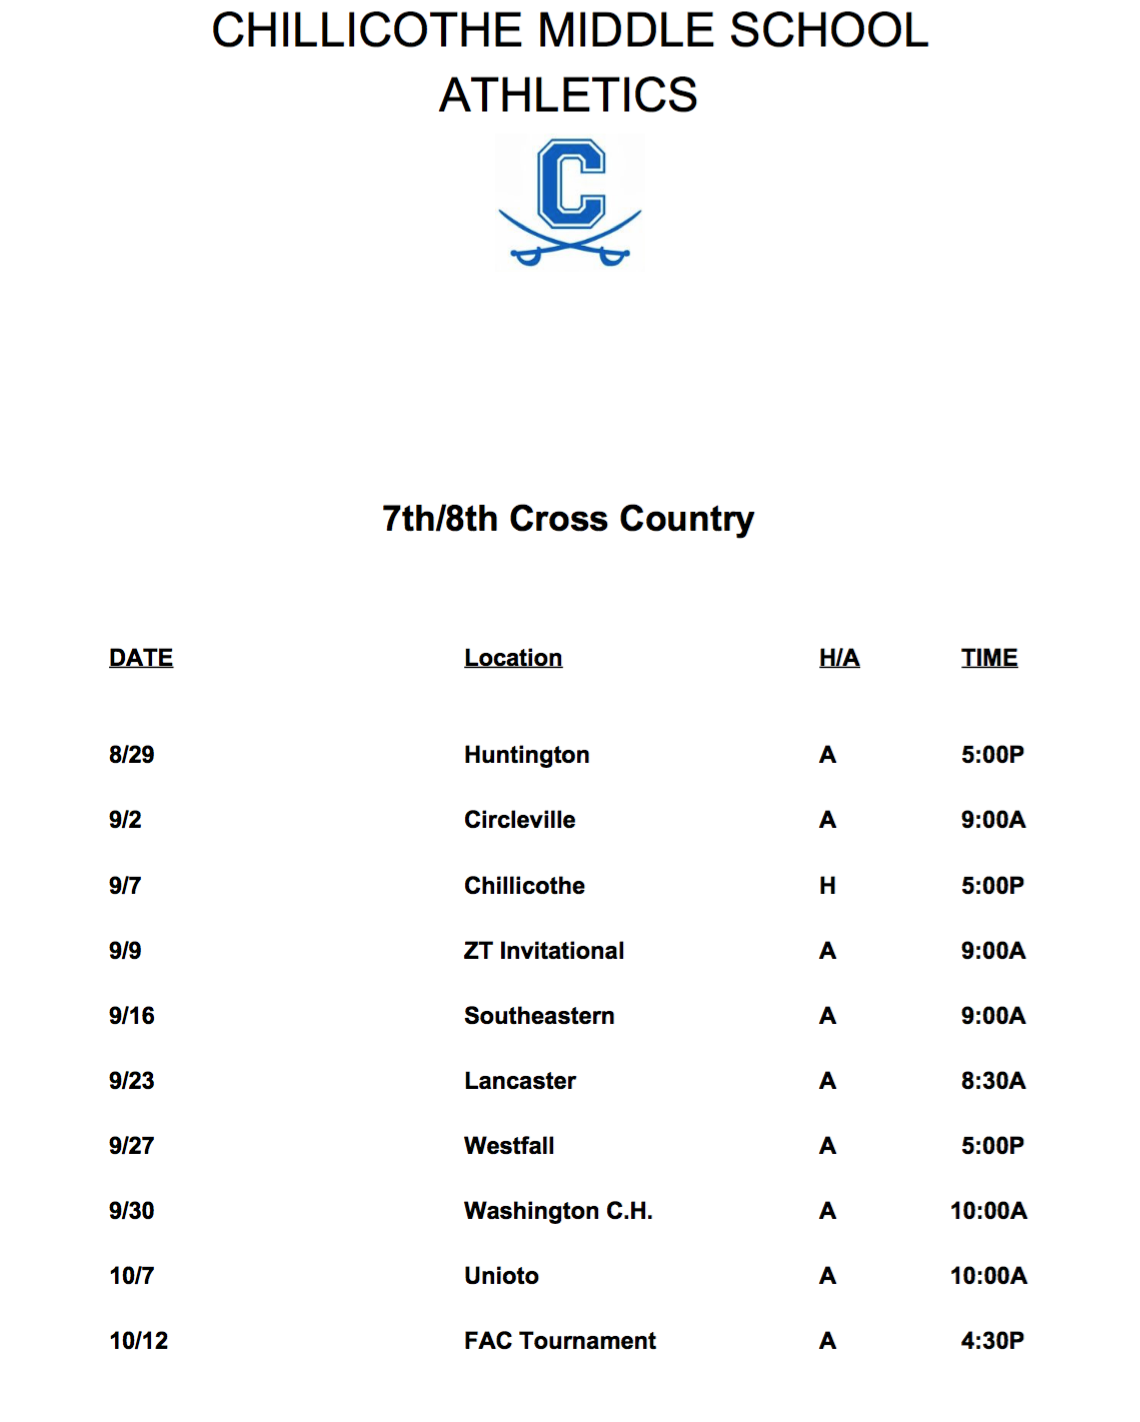 Chillicothe Middle School Sports